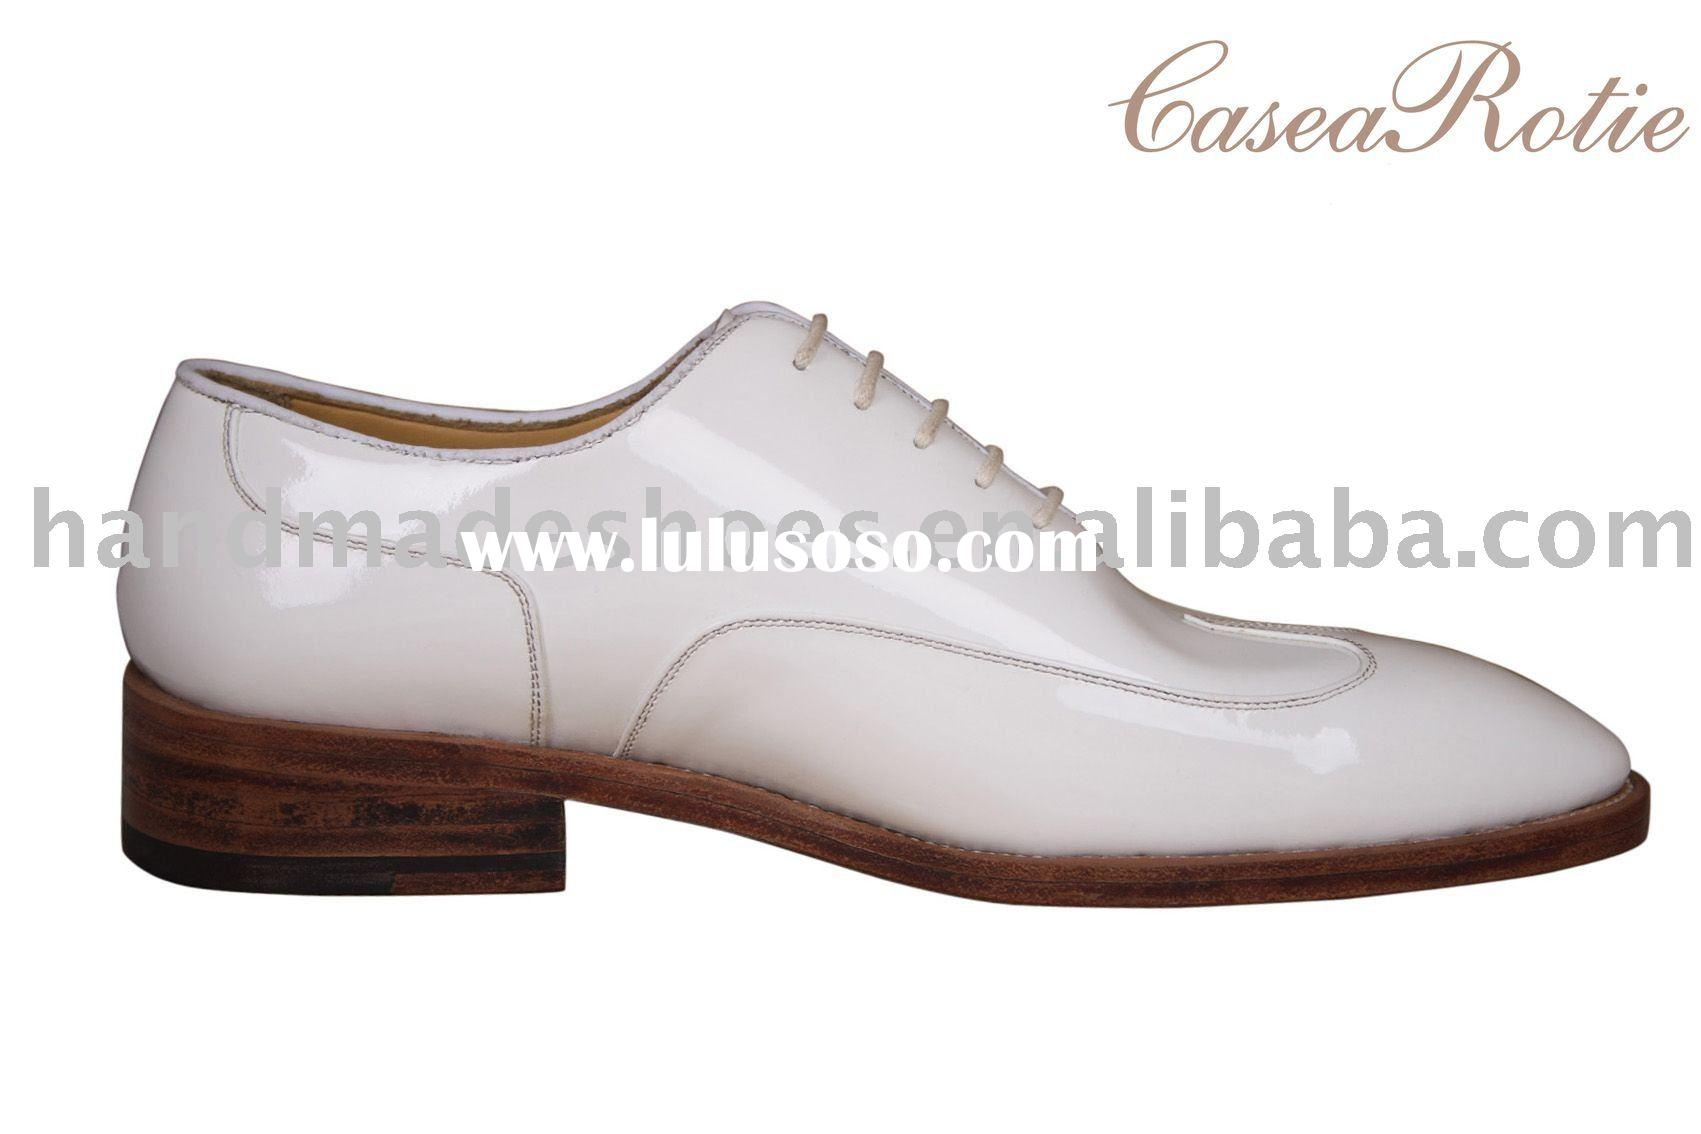 NEW style the leather upper white fashion man shoe handmade by Italy technic